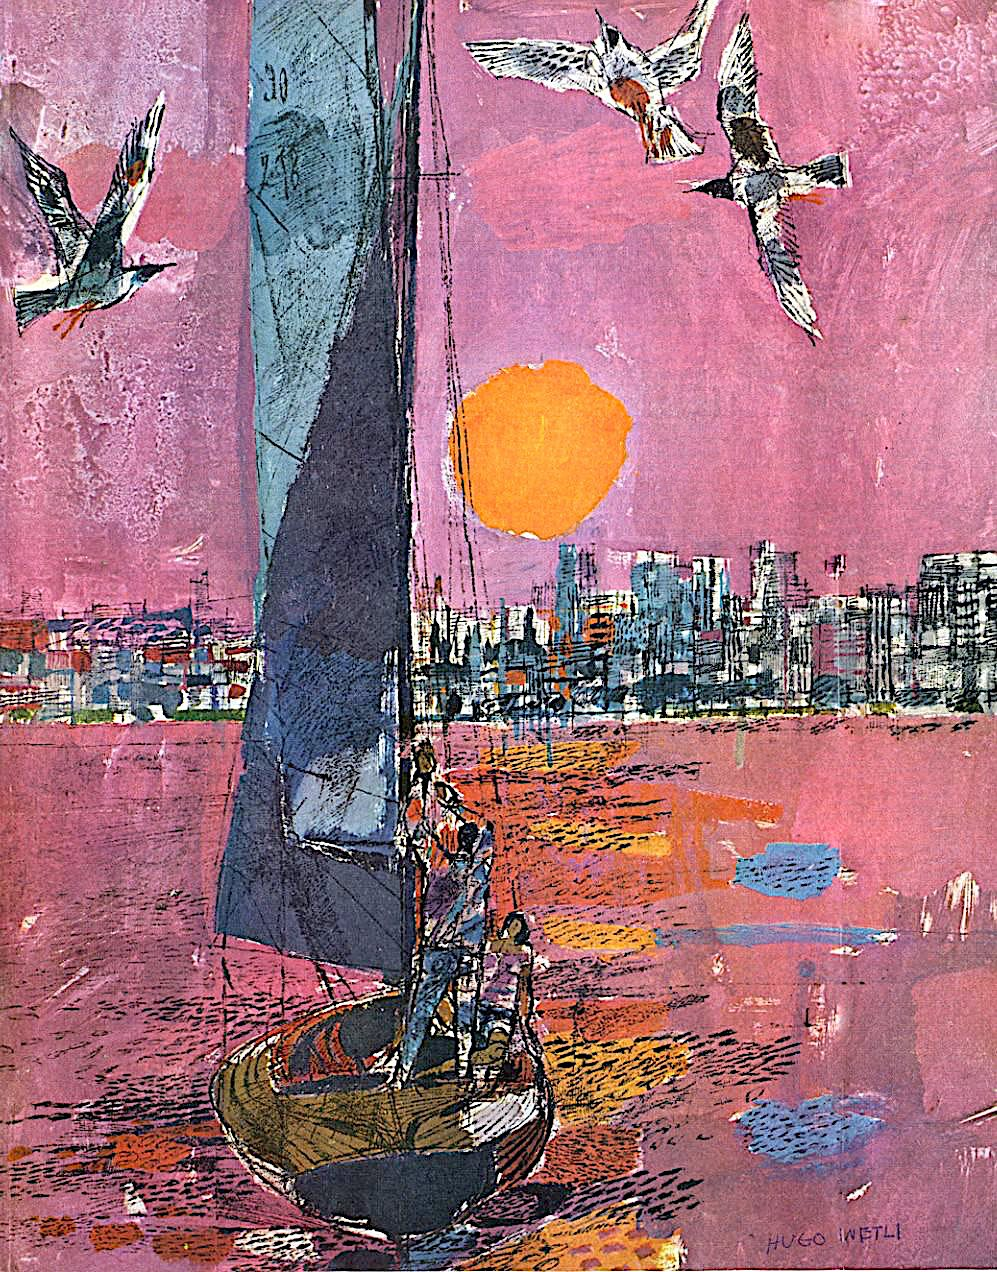 a Hugo Wetli travel poster illustration of a sailboat in an urban harbour